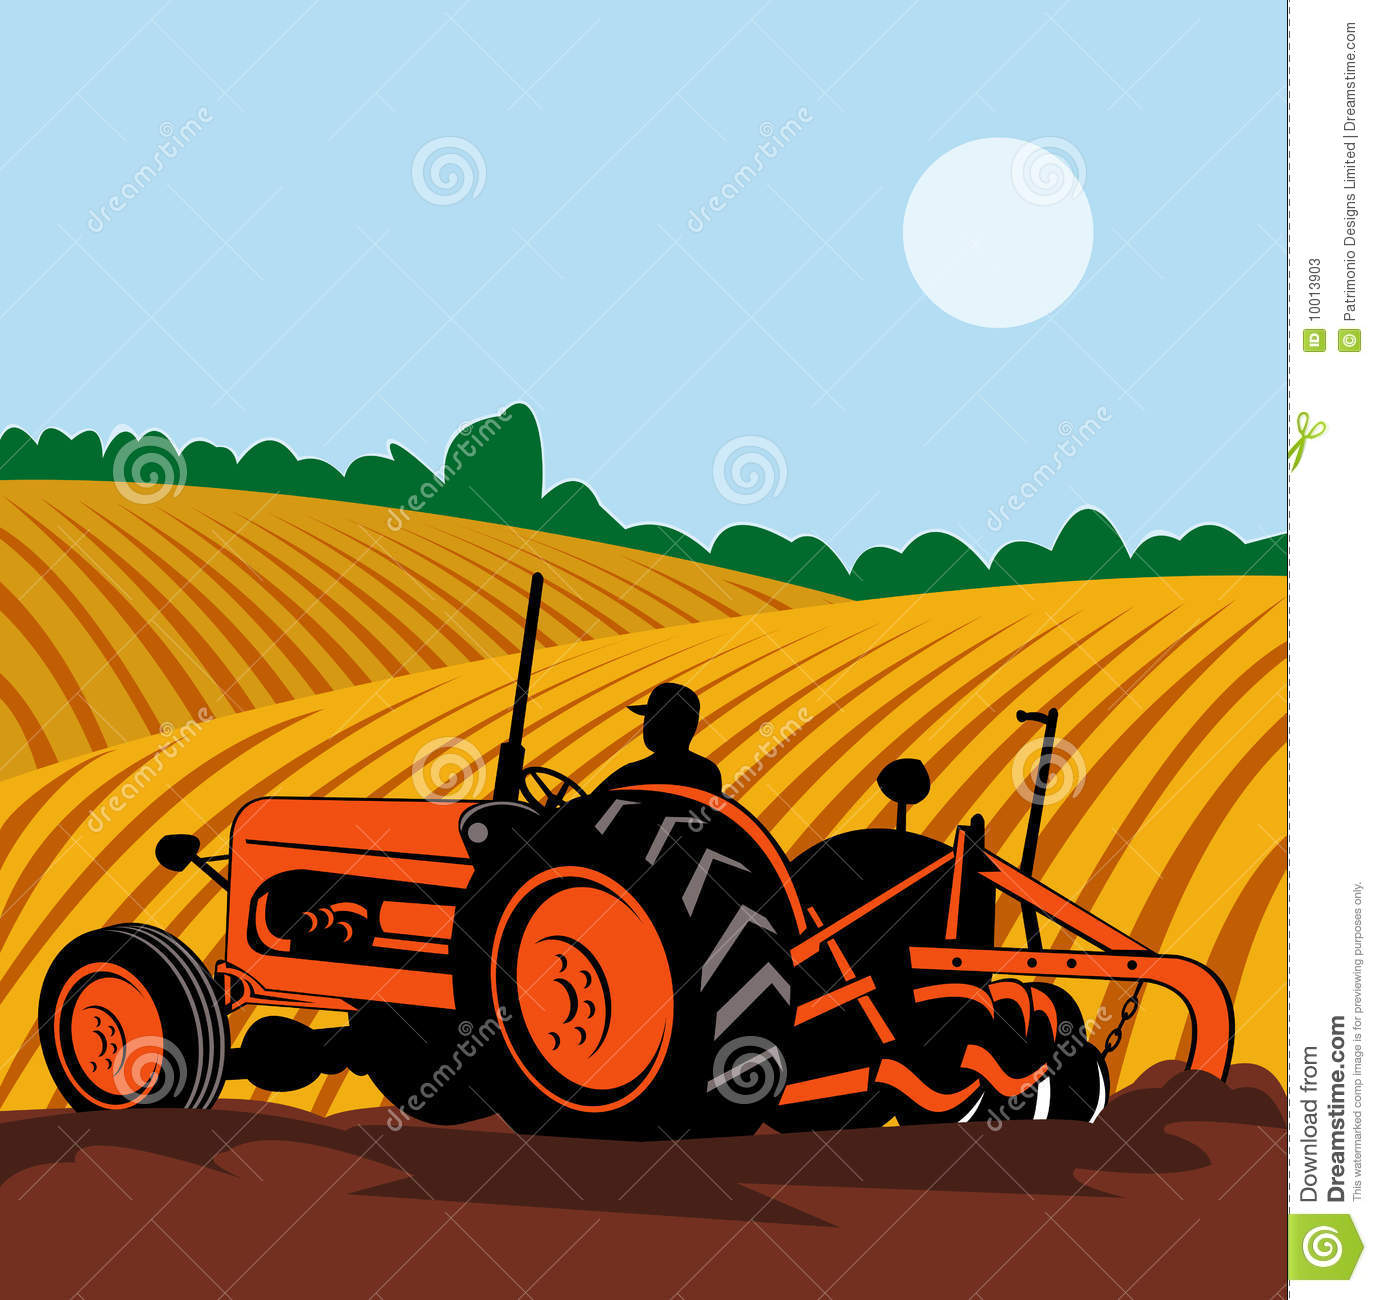 Old Tractor Clip Art : Farmer driving vintage tractor stock illustration image